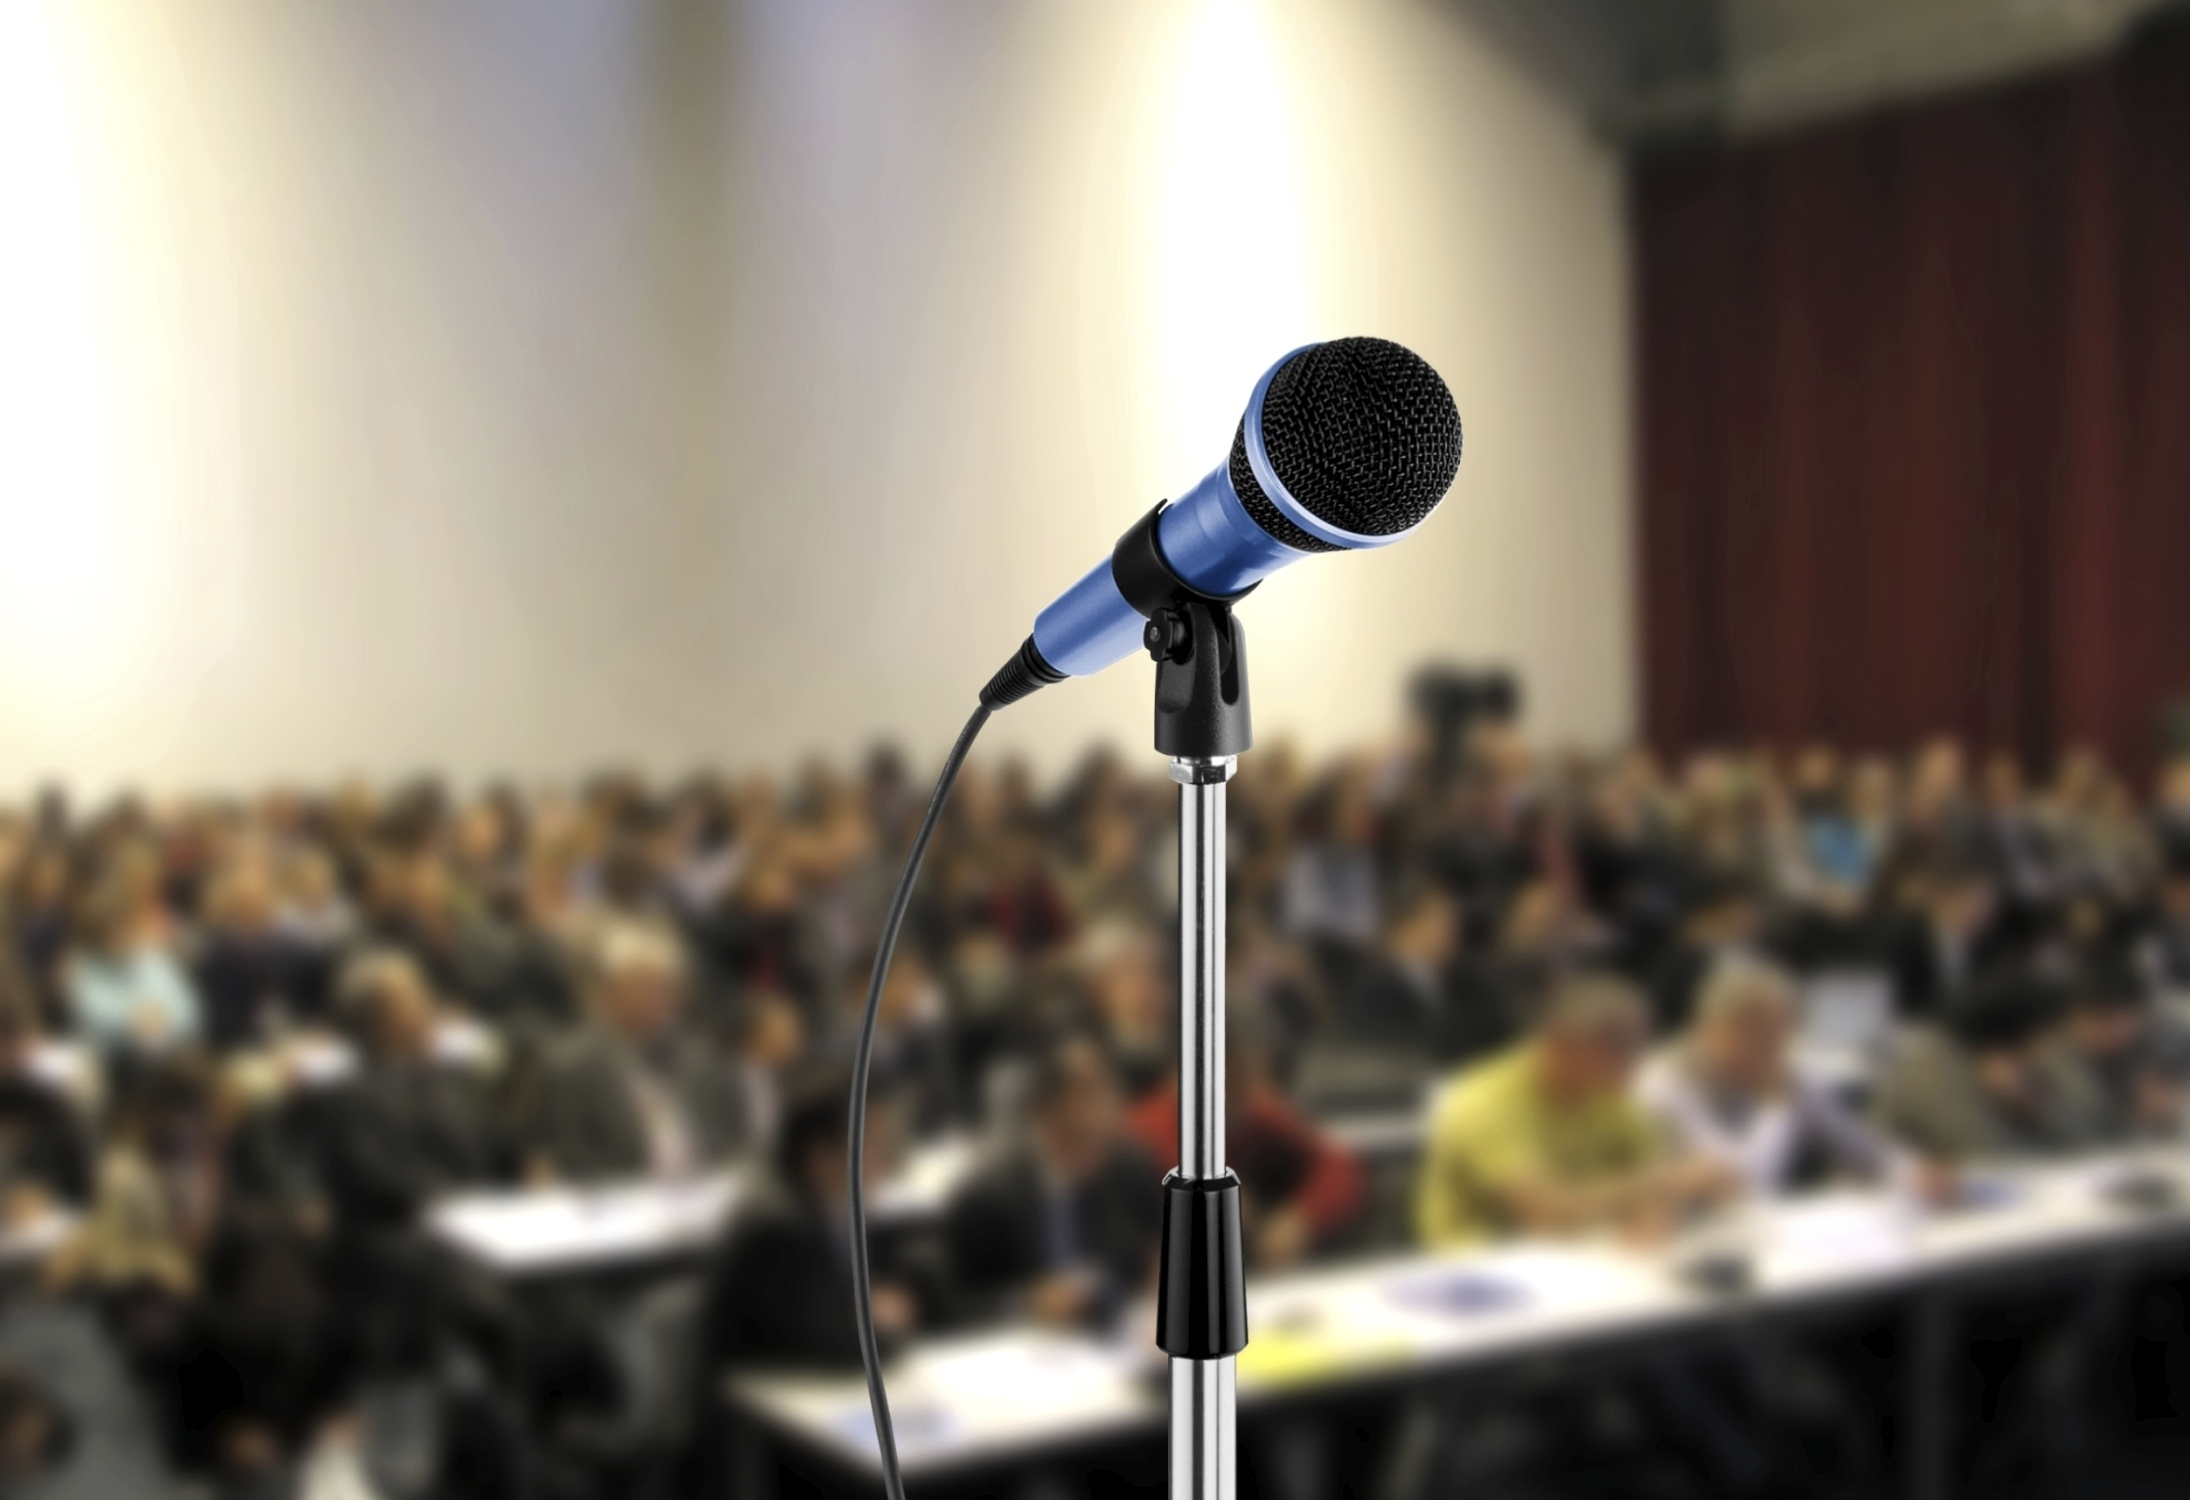 Impactful presenter: top 10 tip how to make a compelling.